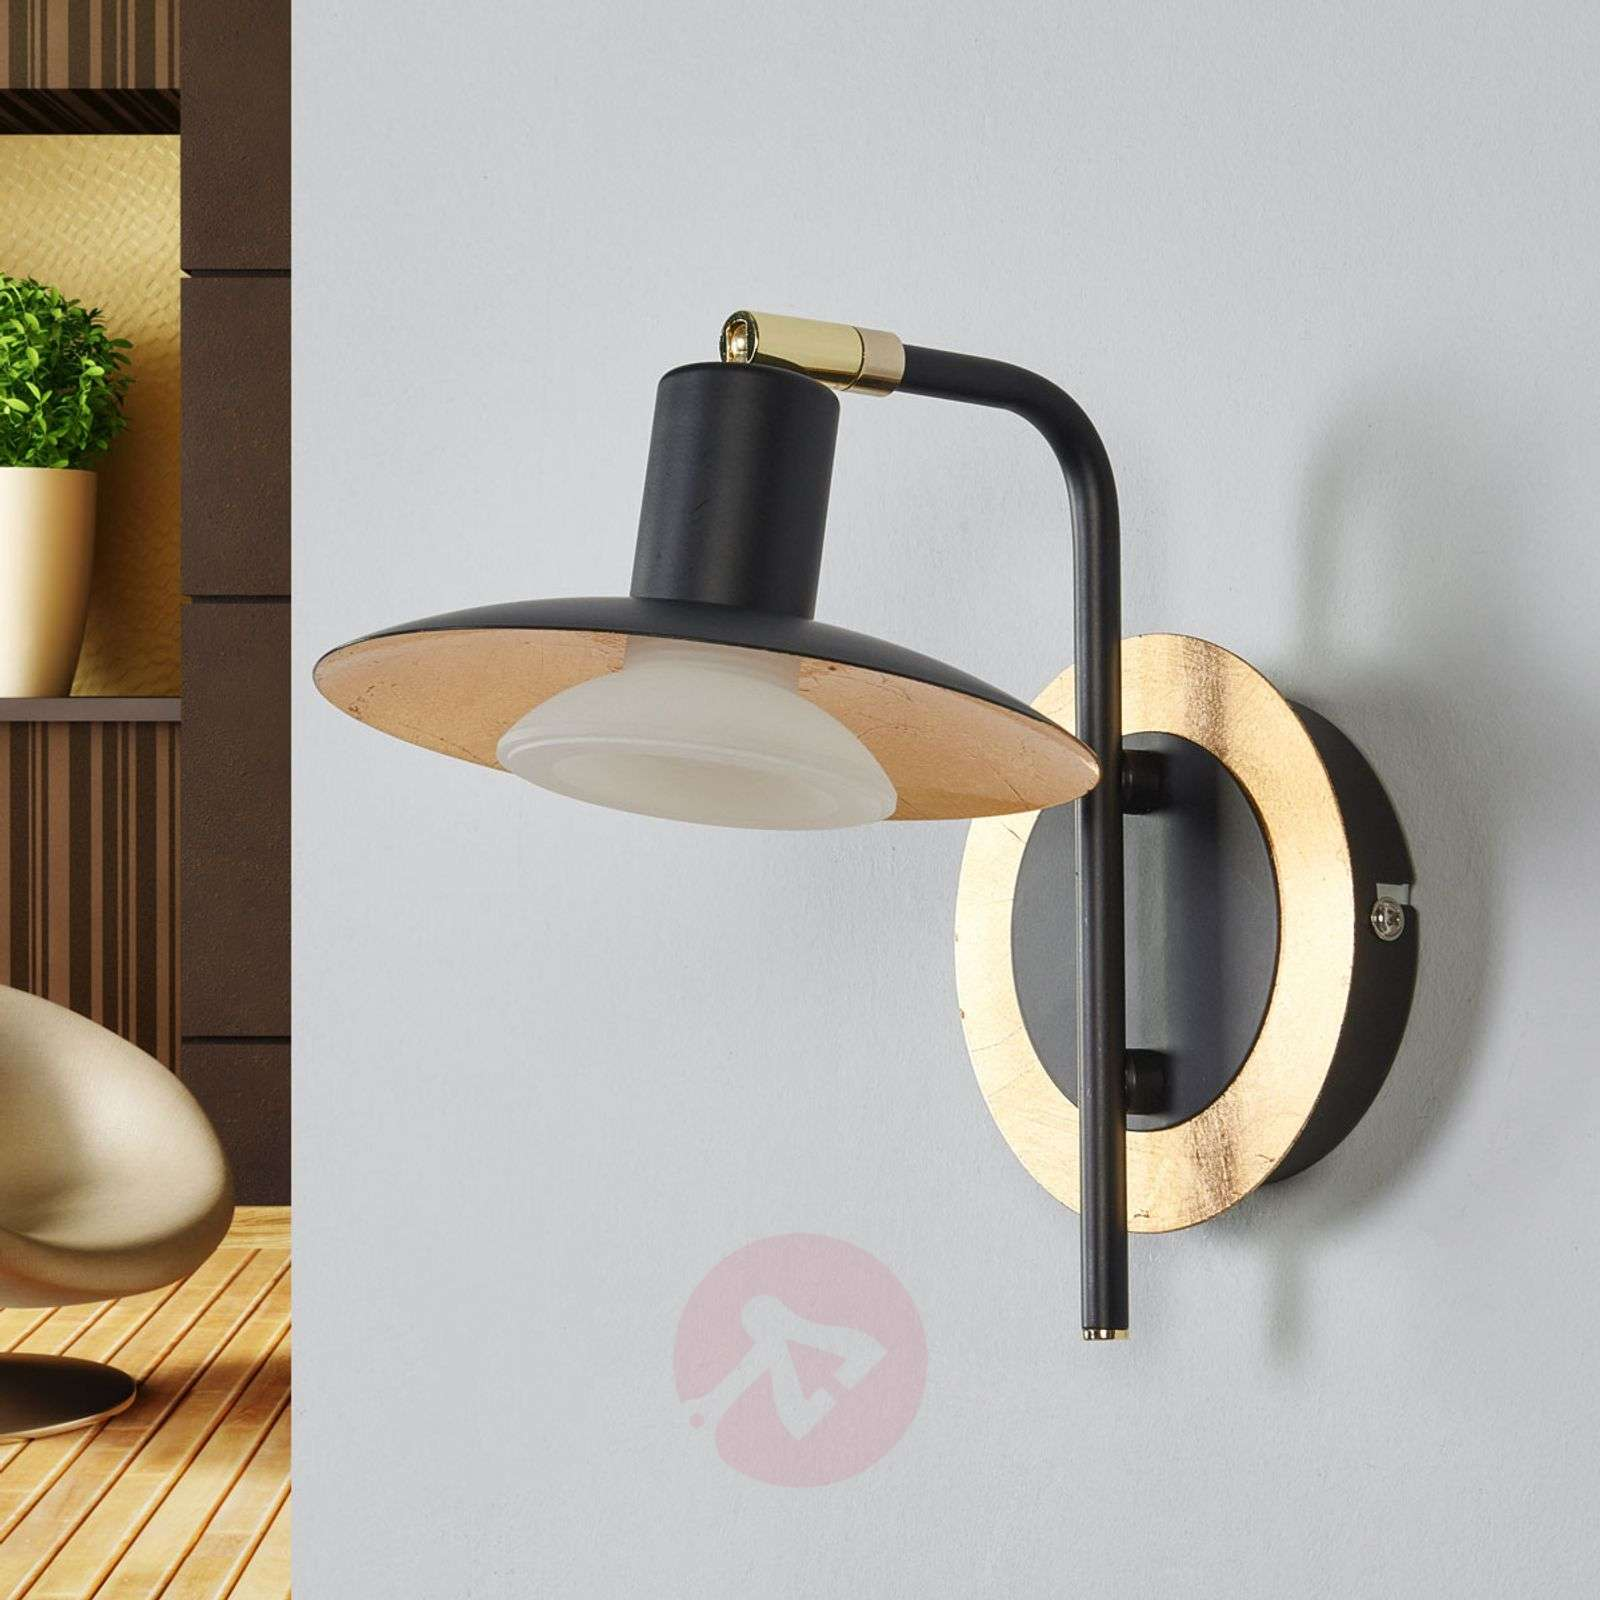 Black-gold LED wall lamp Andrej-9634039-01